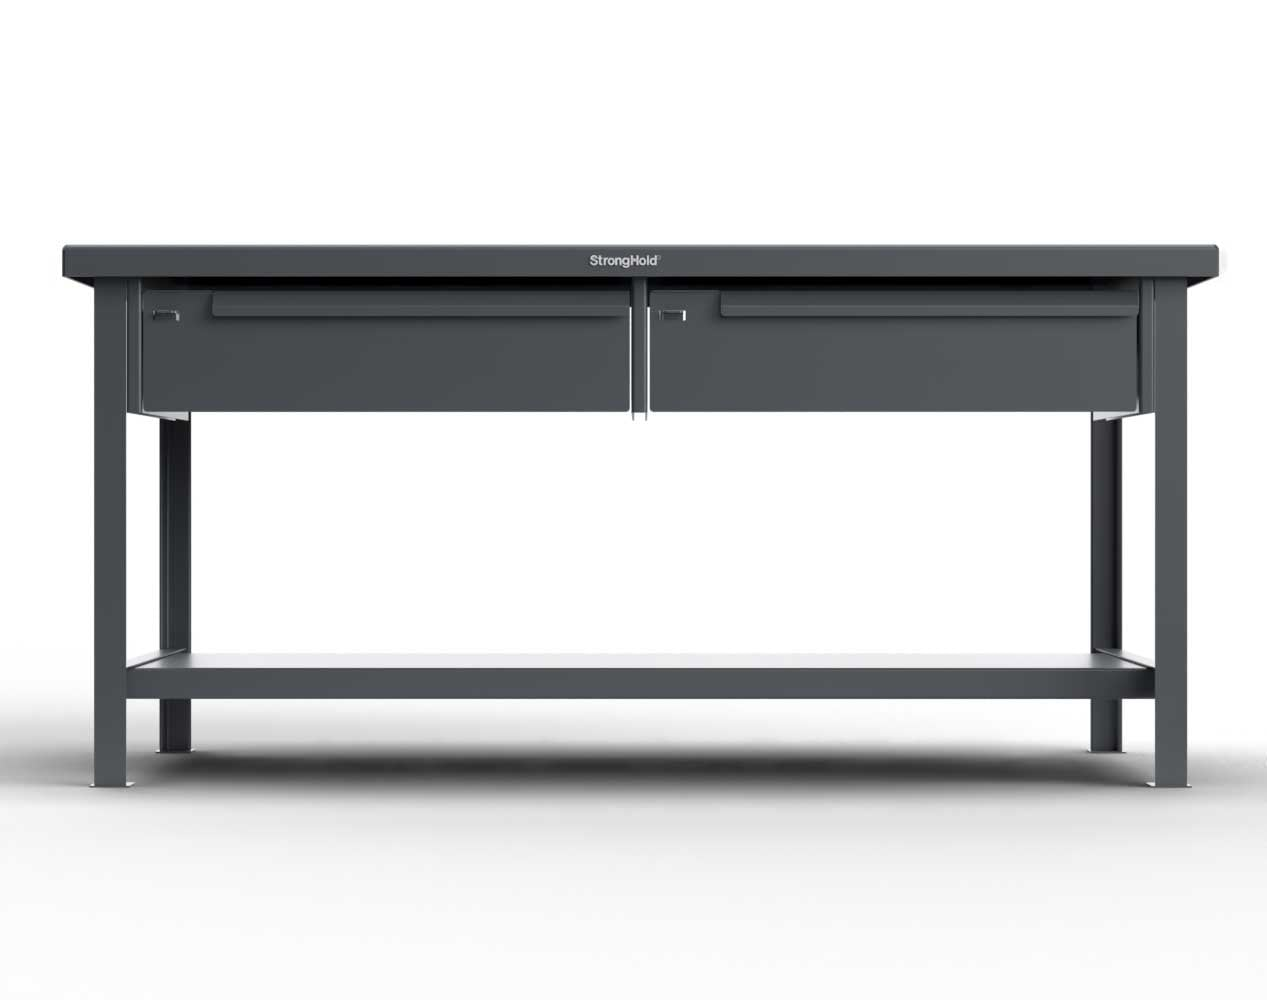 Extra Heavy Duty 7 GA Shop Table with UHMW Top, 2 Drawers, 1 Shelf – 48 In. W x 30 In. D x 34 In. H